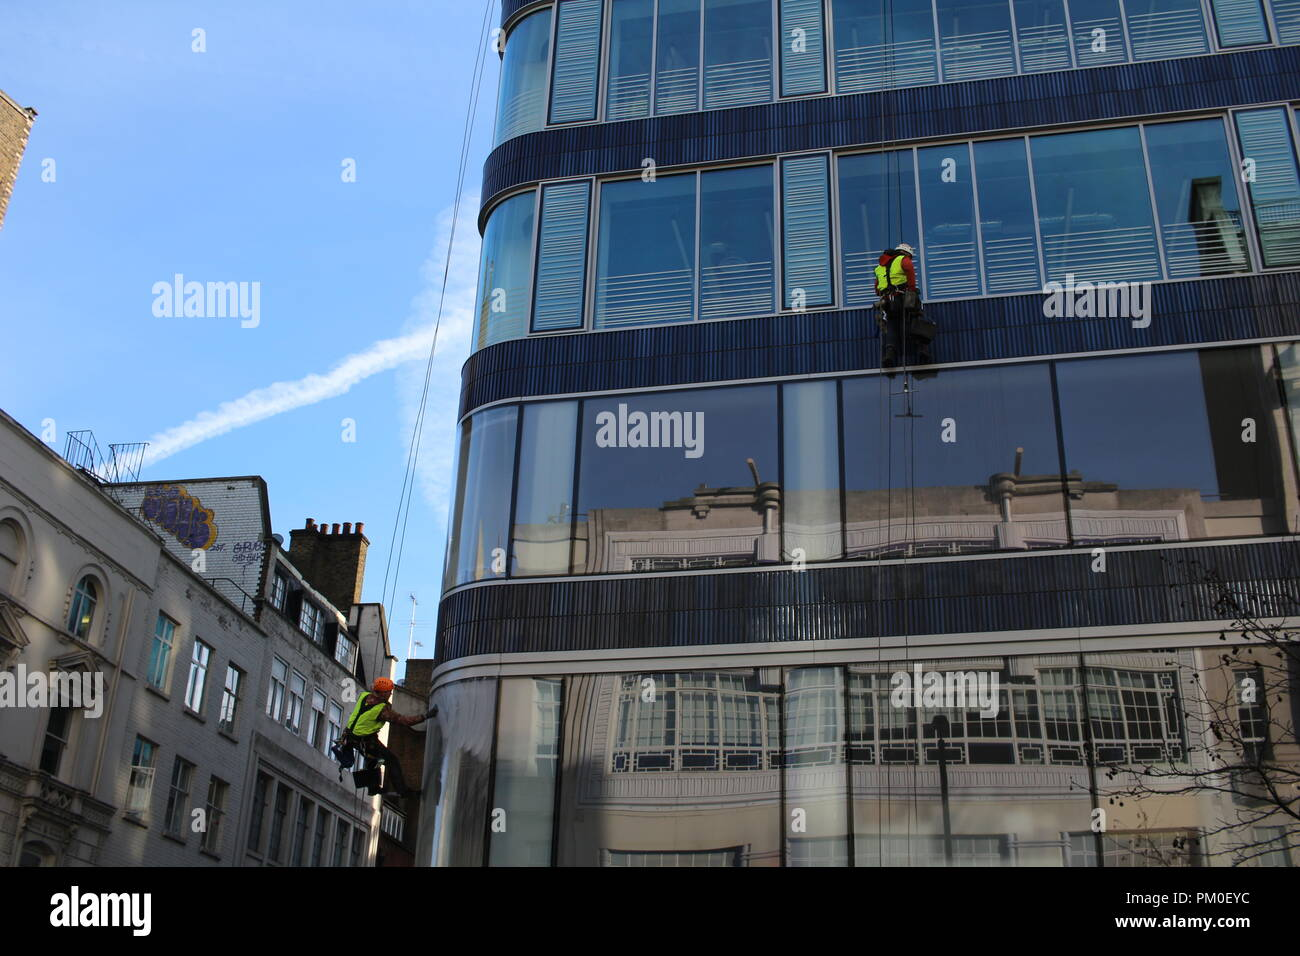 LONDON, UK - February 16, 2018: Oxford  street; a group of workers cleaning washing windows on high rise building. - Stock Image